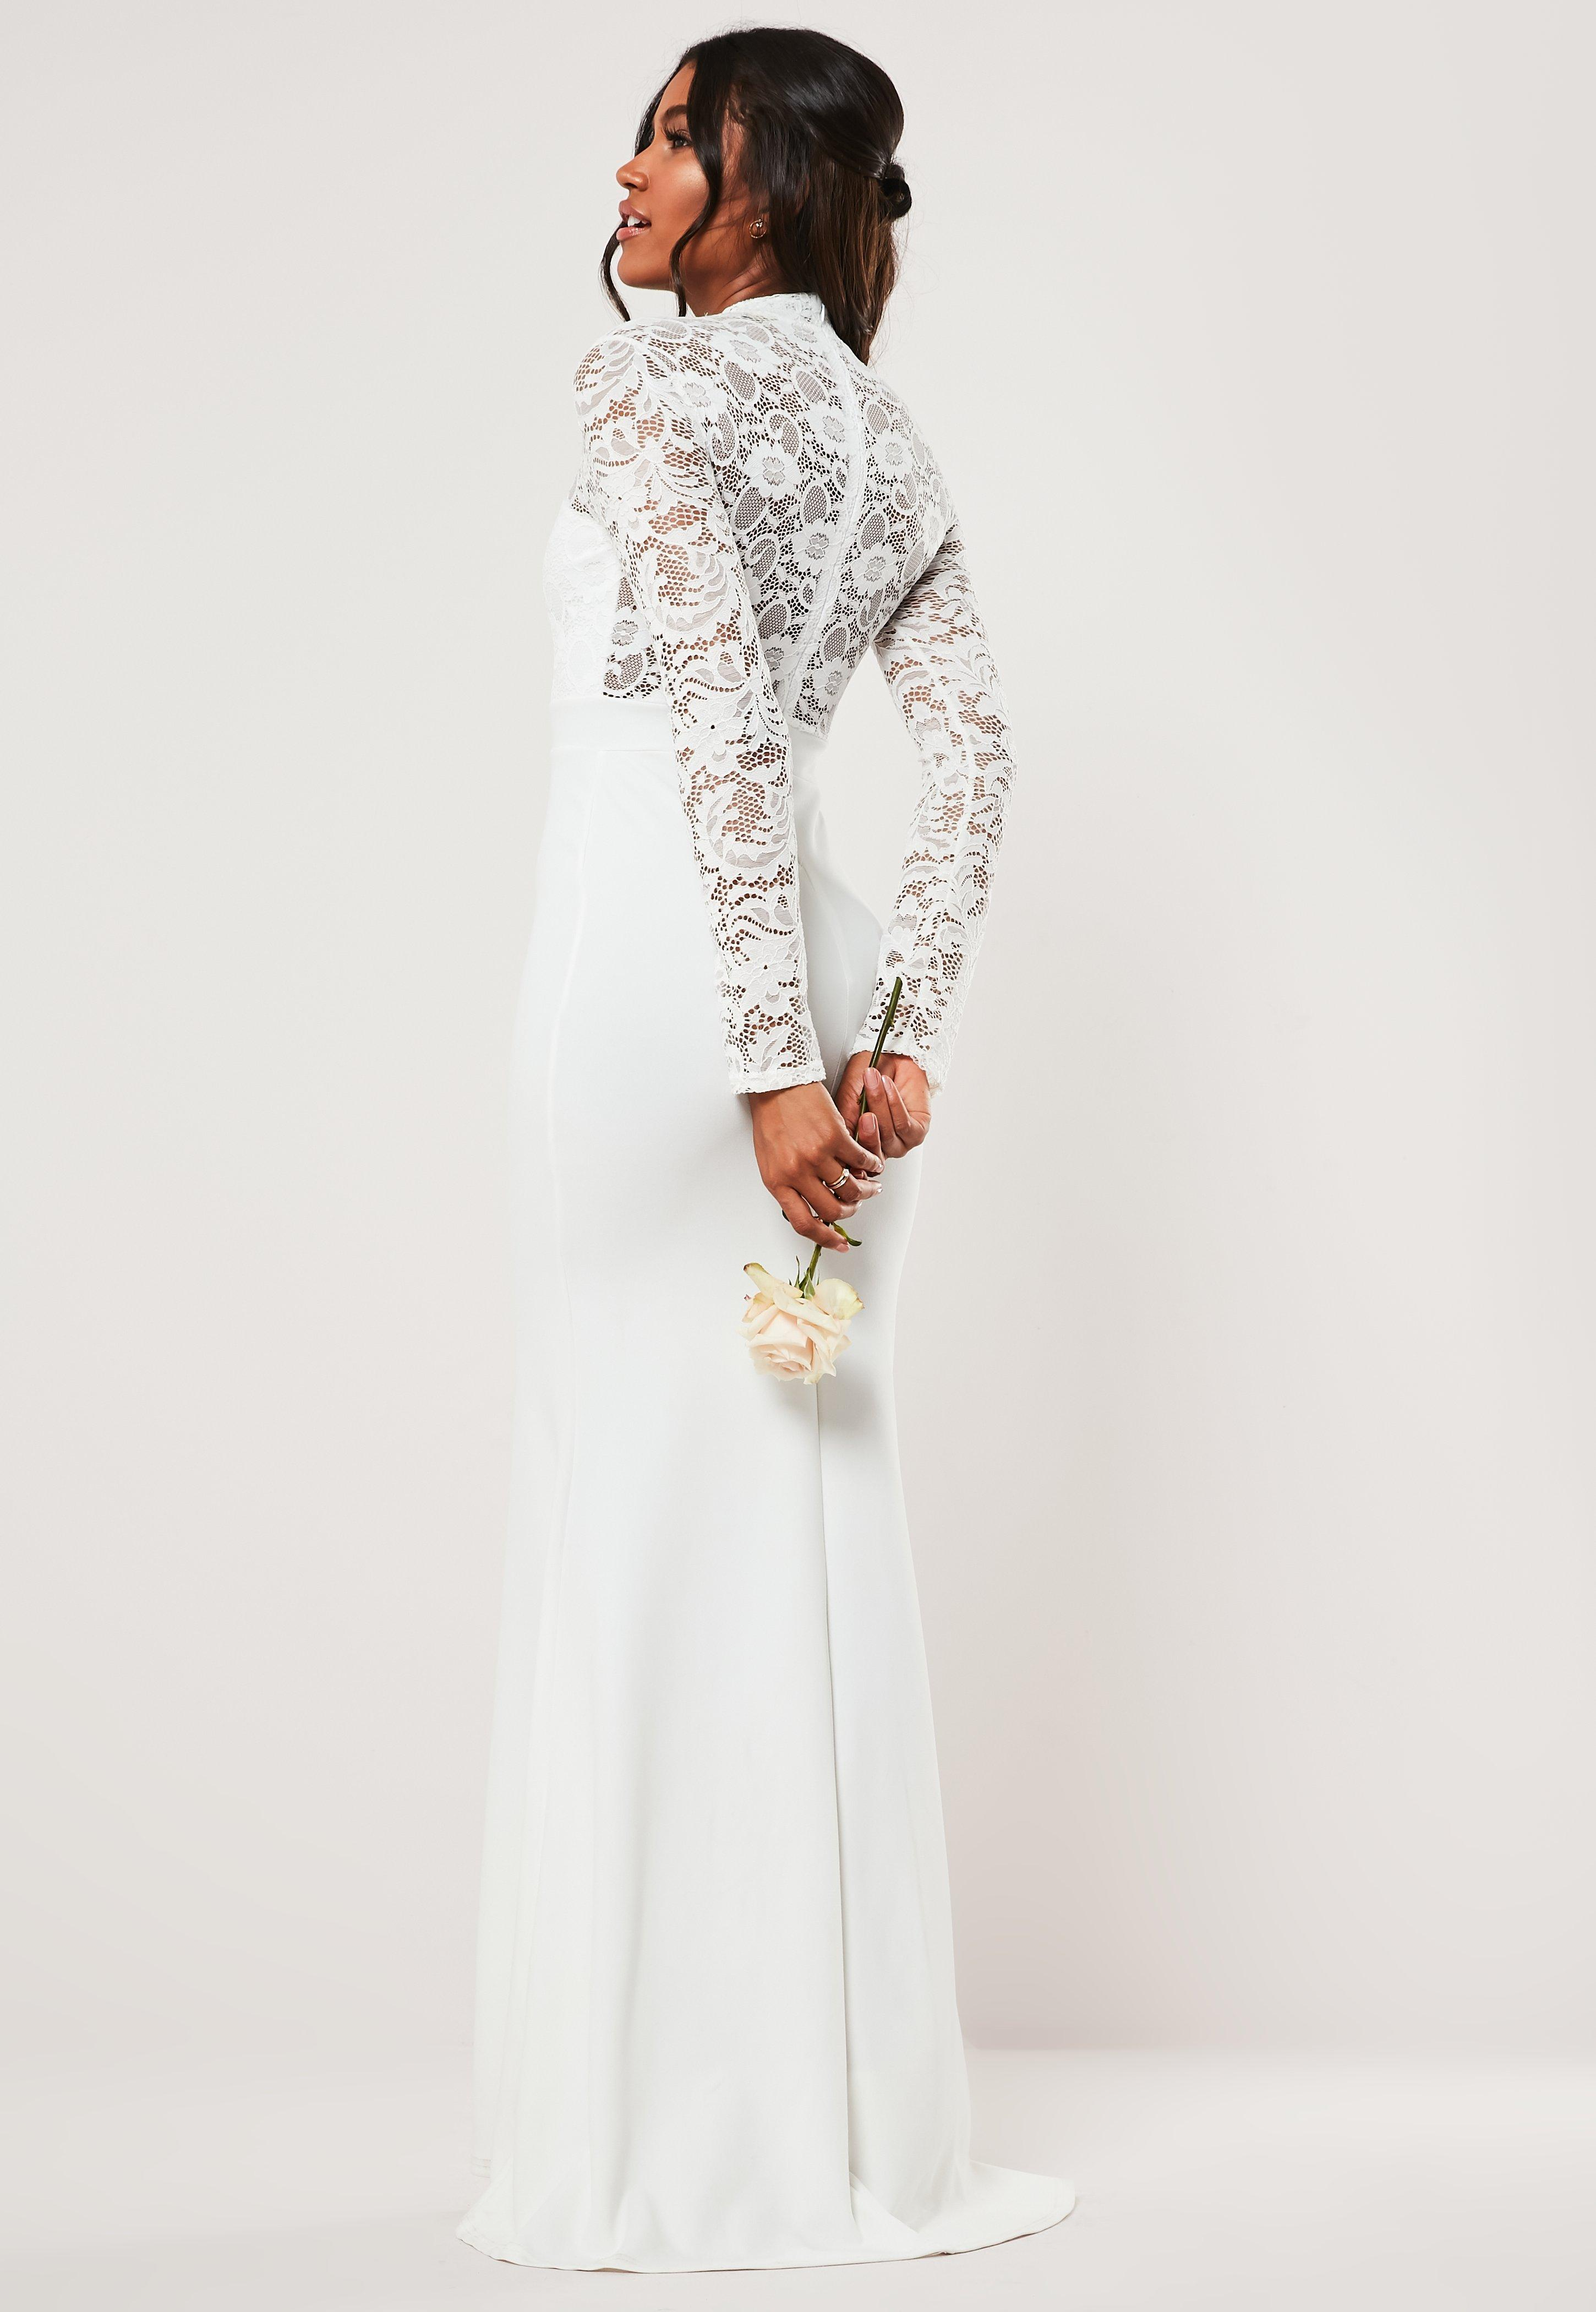 786fb6d3e81 Bridesmaid White Long Sleeve Lace Back Maxi Dress